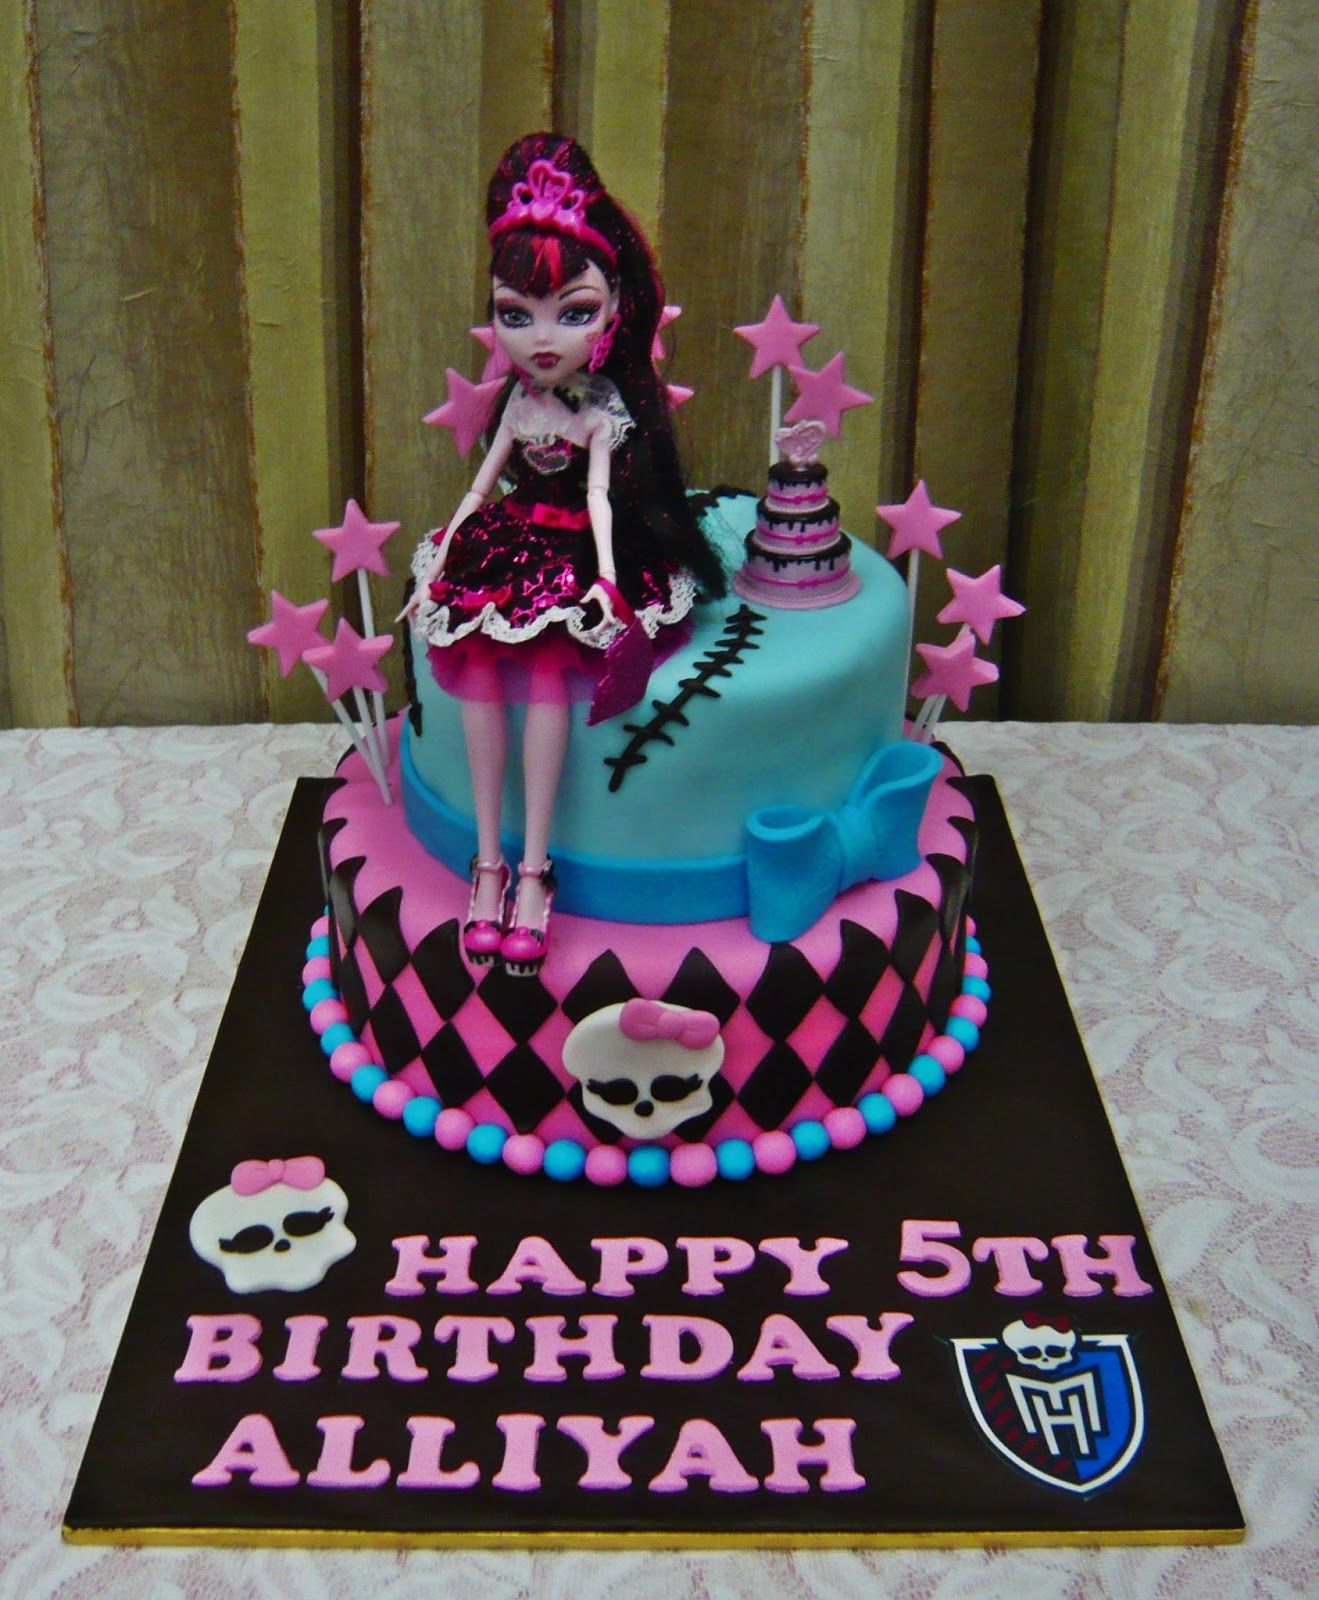 Google themes monster high - Commissioned By Azmi Request Monster High Theme Draculaura Doll Is Provided To Be Placed On The Cake Choc Moist Cake